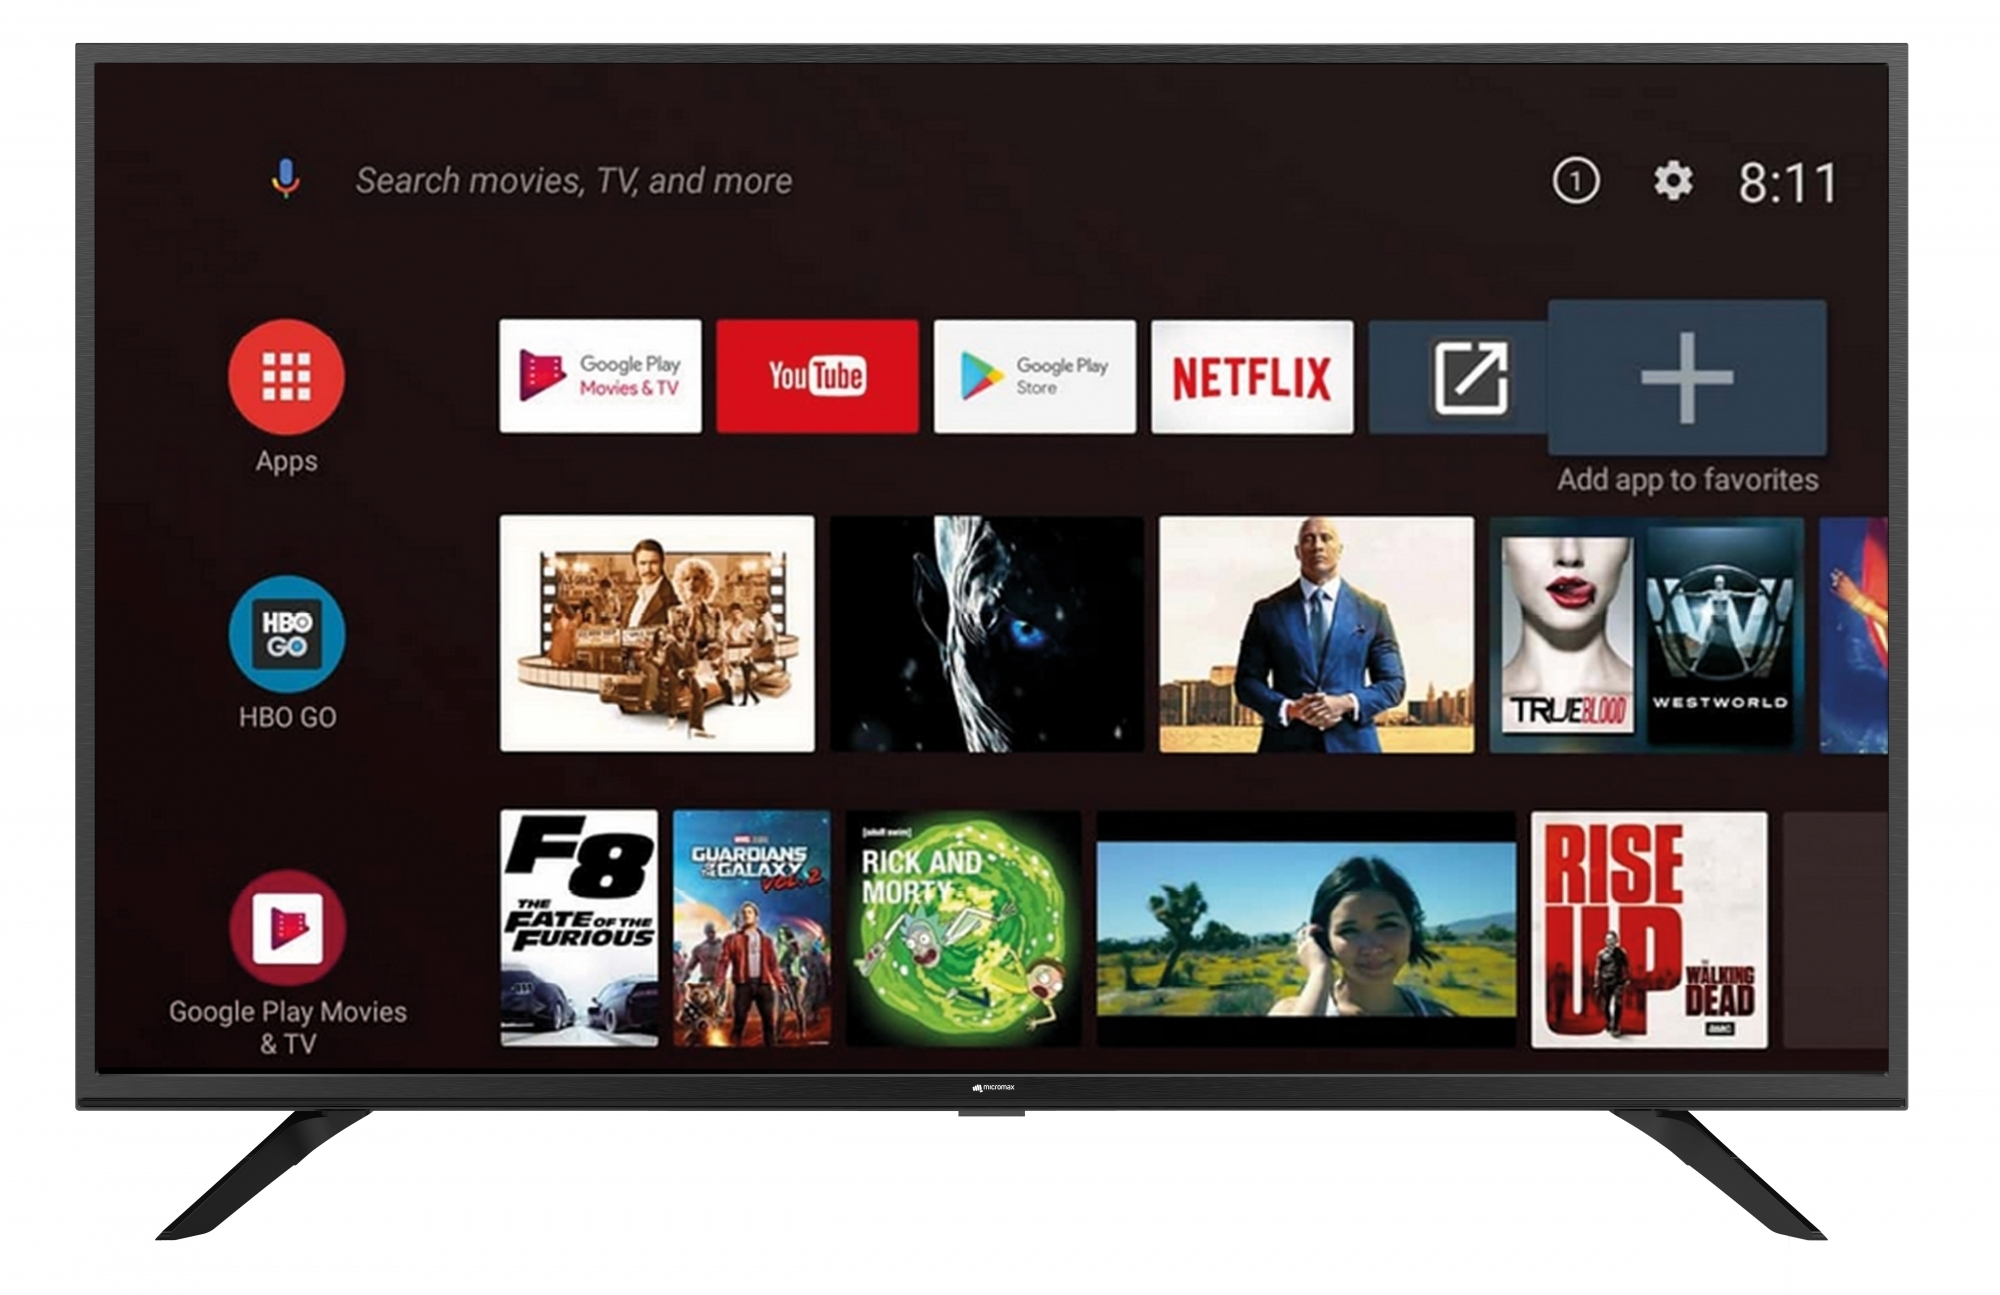 Micromax Android TV Lineup Launched in India, Starting Rs. 13,999